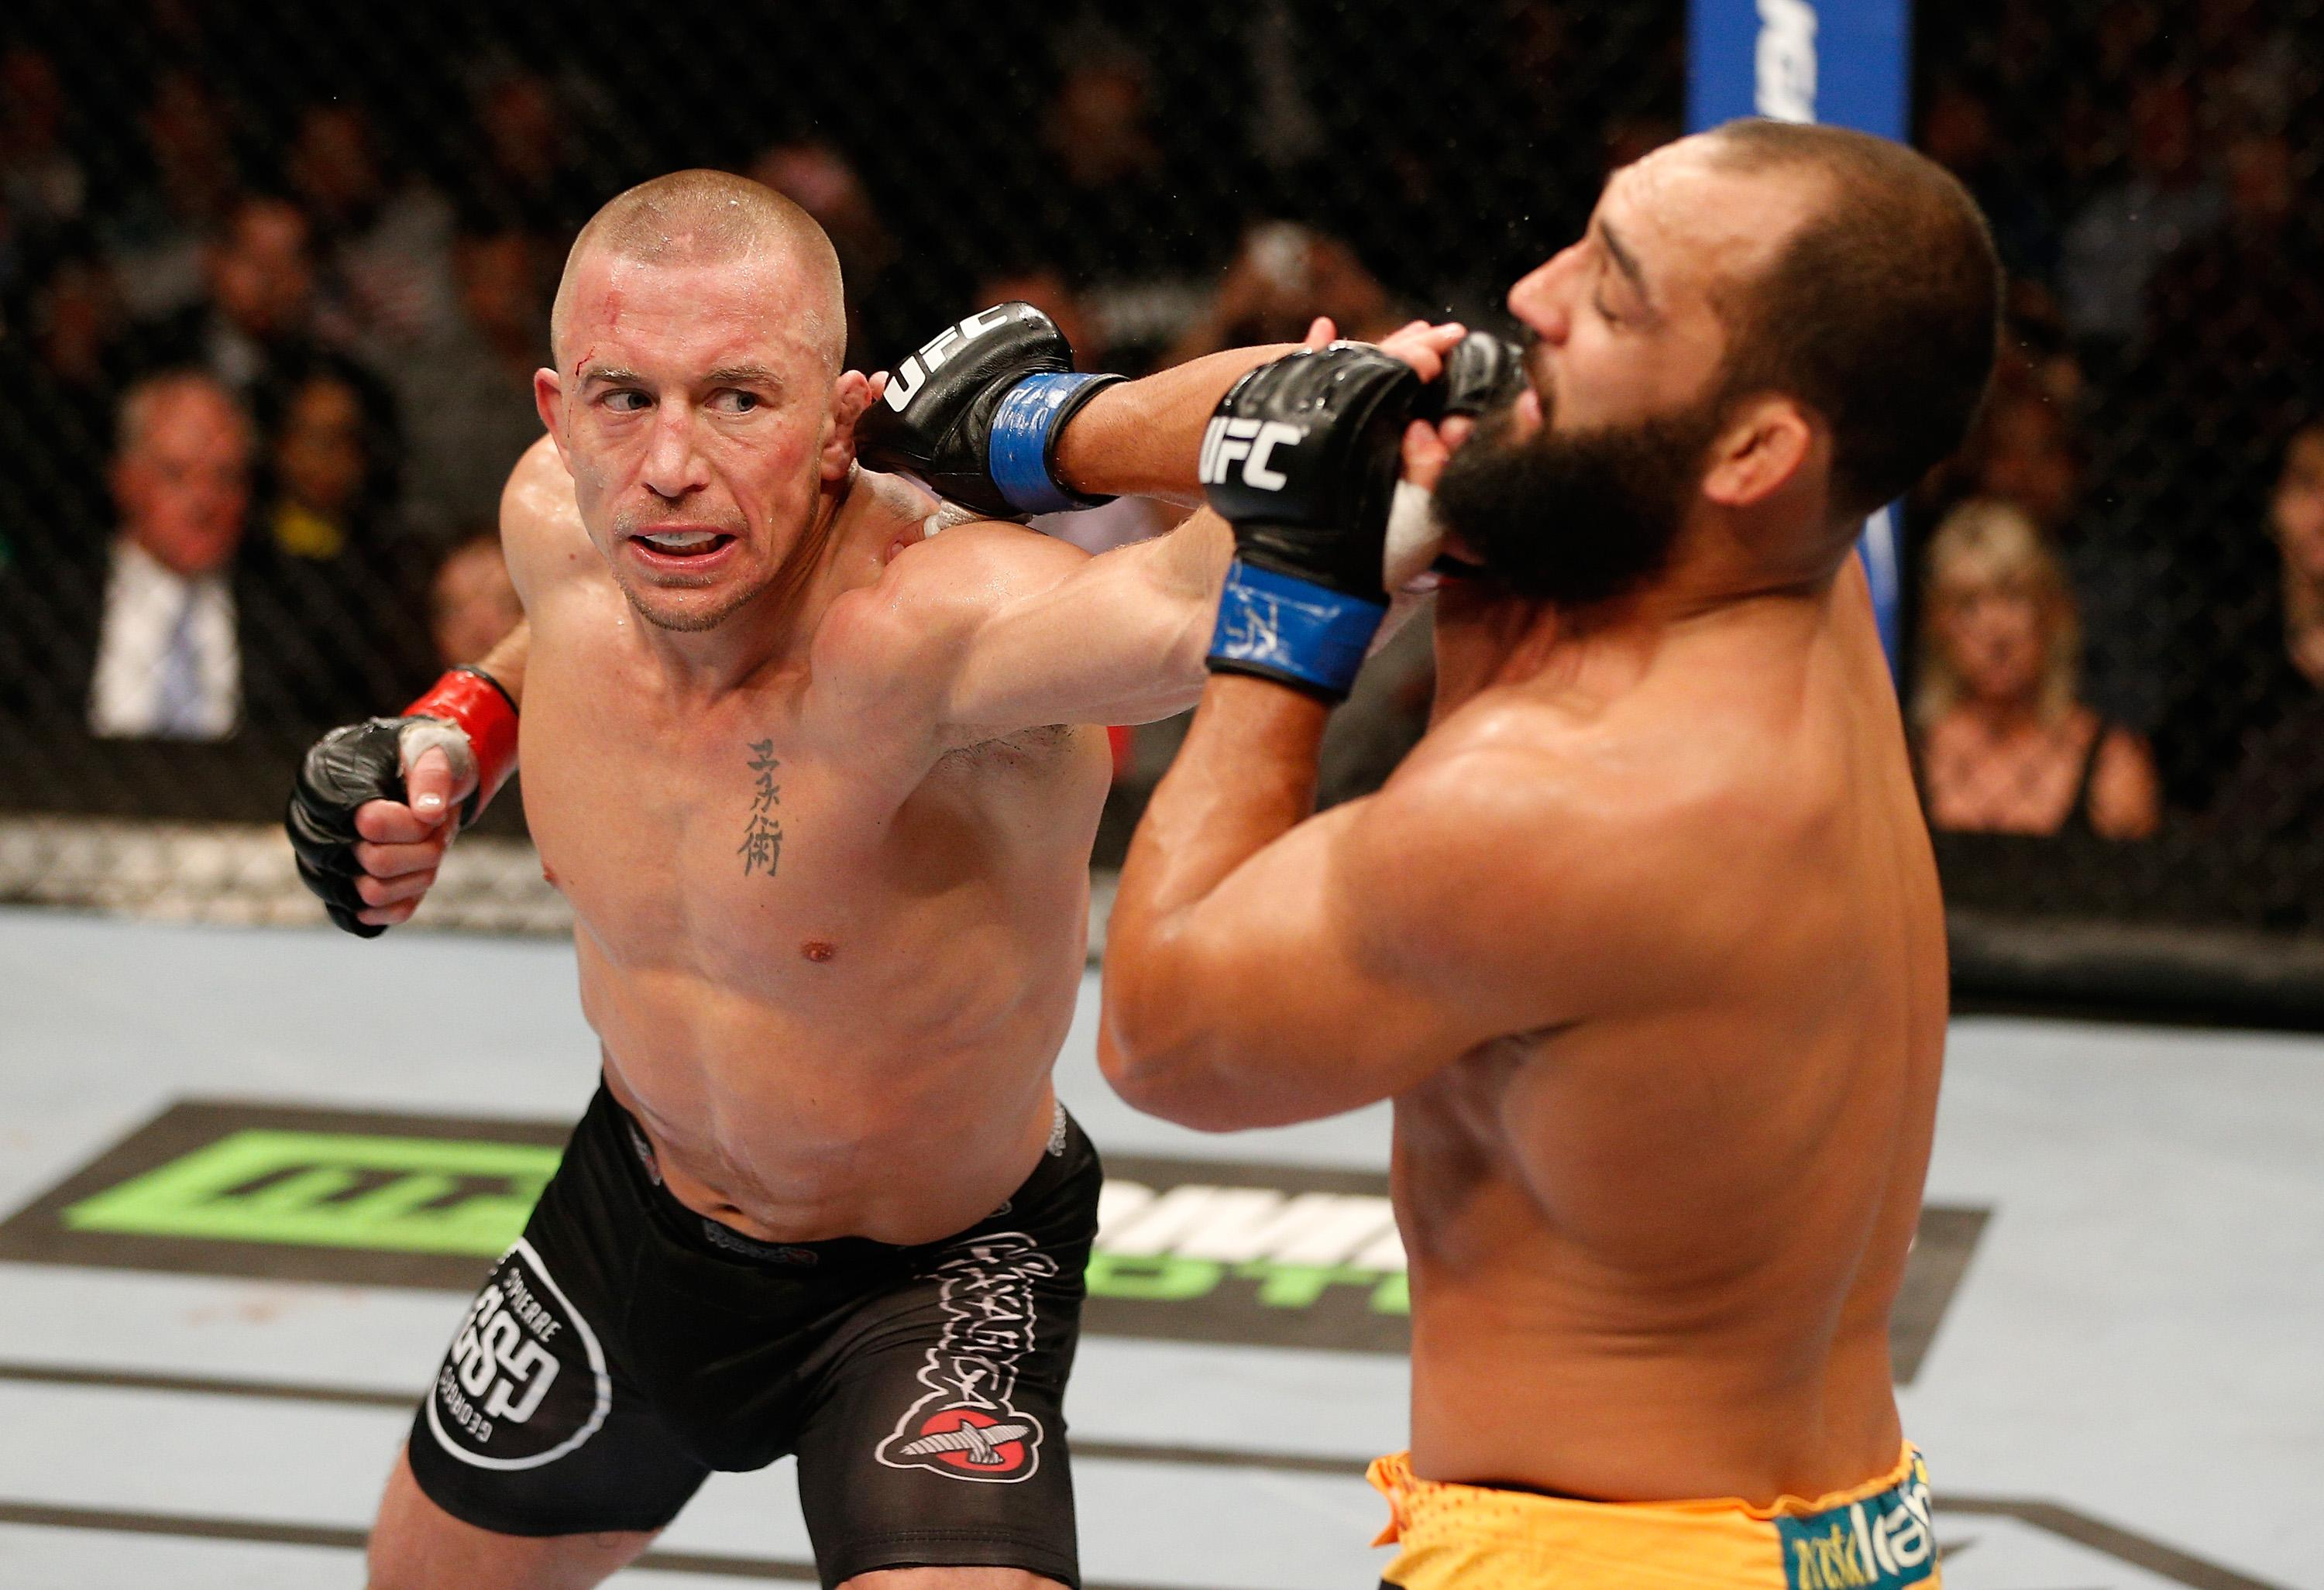 St-Pierre has won titles at two UFC weight divisions